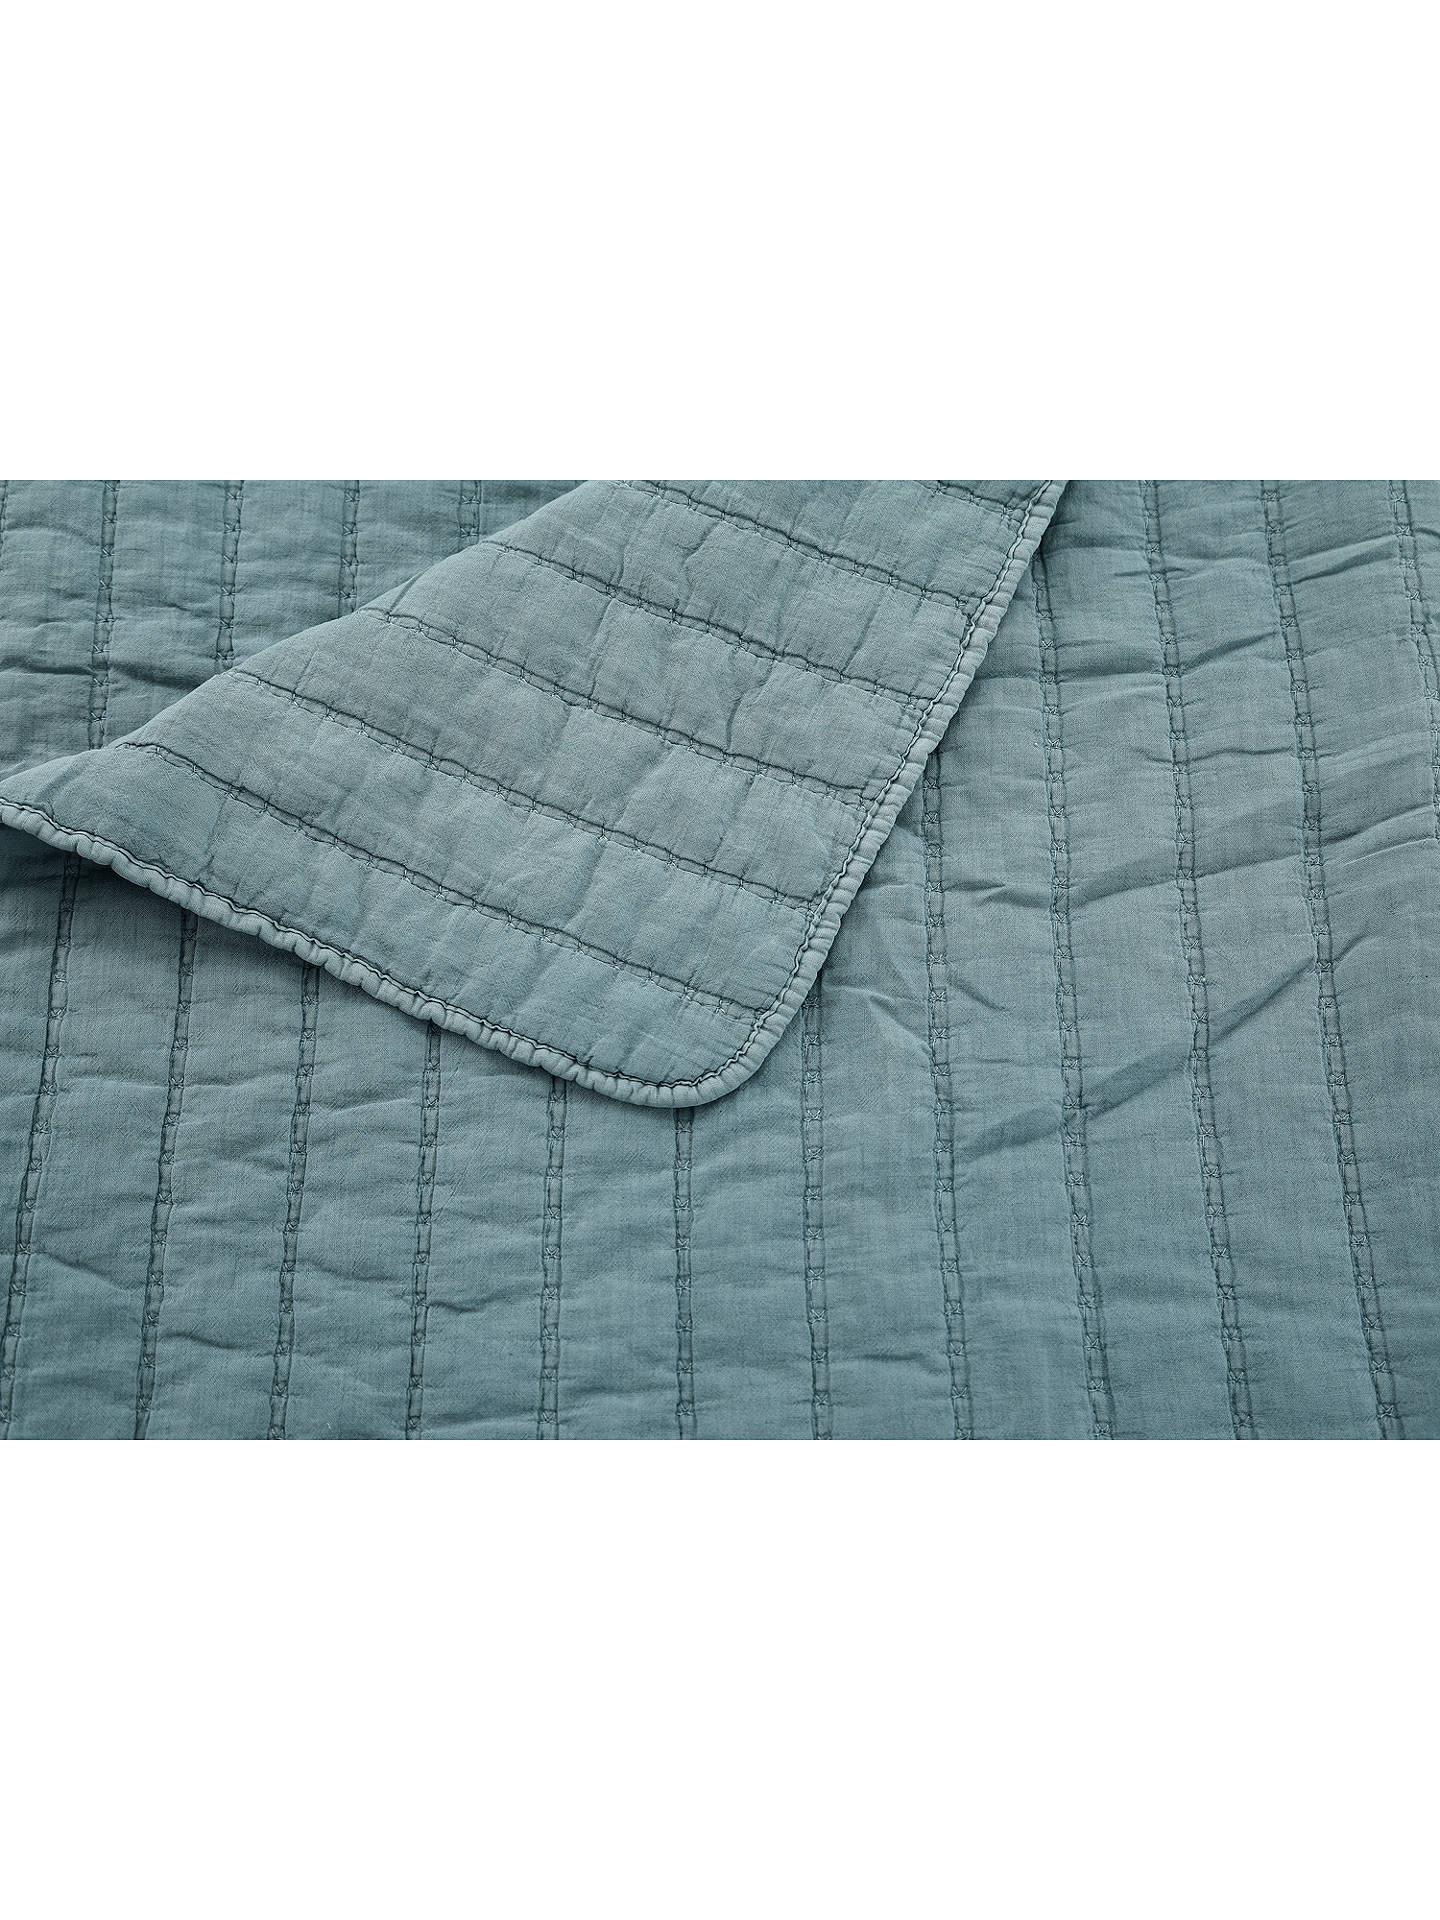 Buy bluebellgray Relaxed Wash Quilt, Pacific Online at johnlewis.com